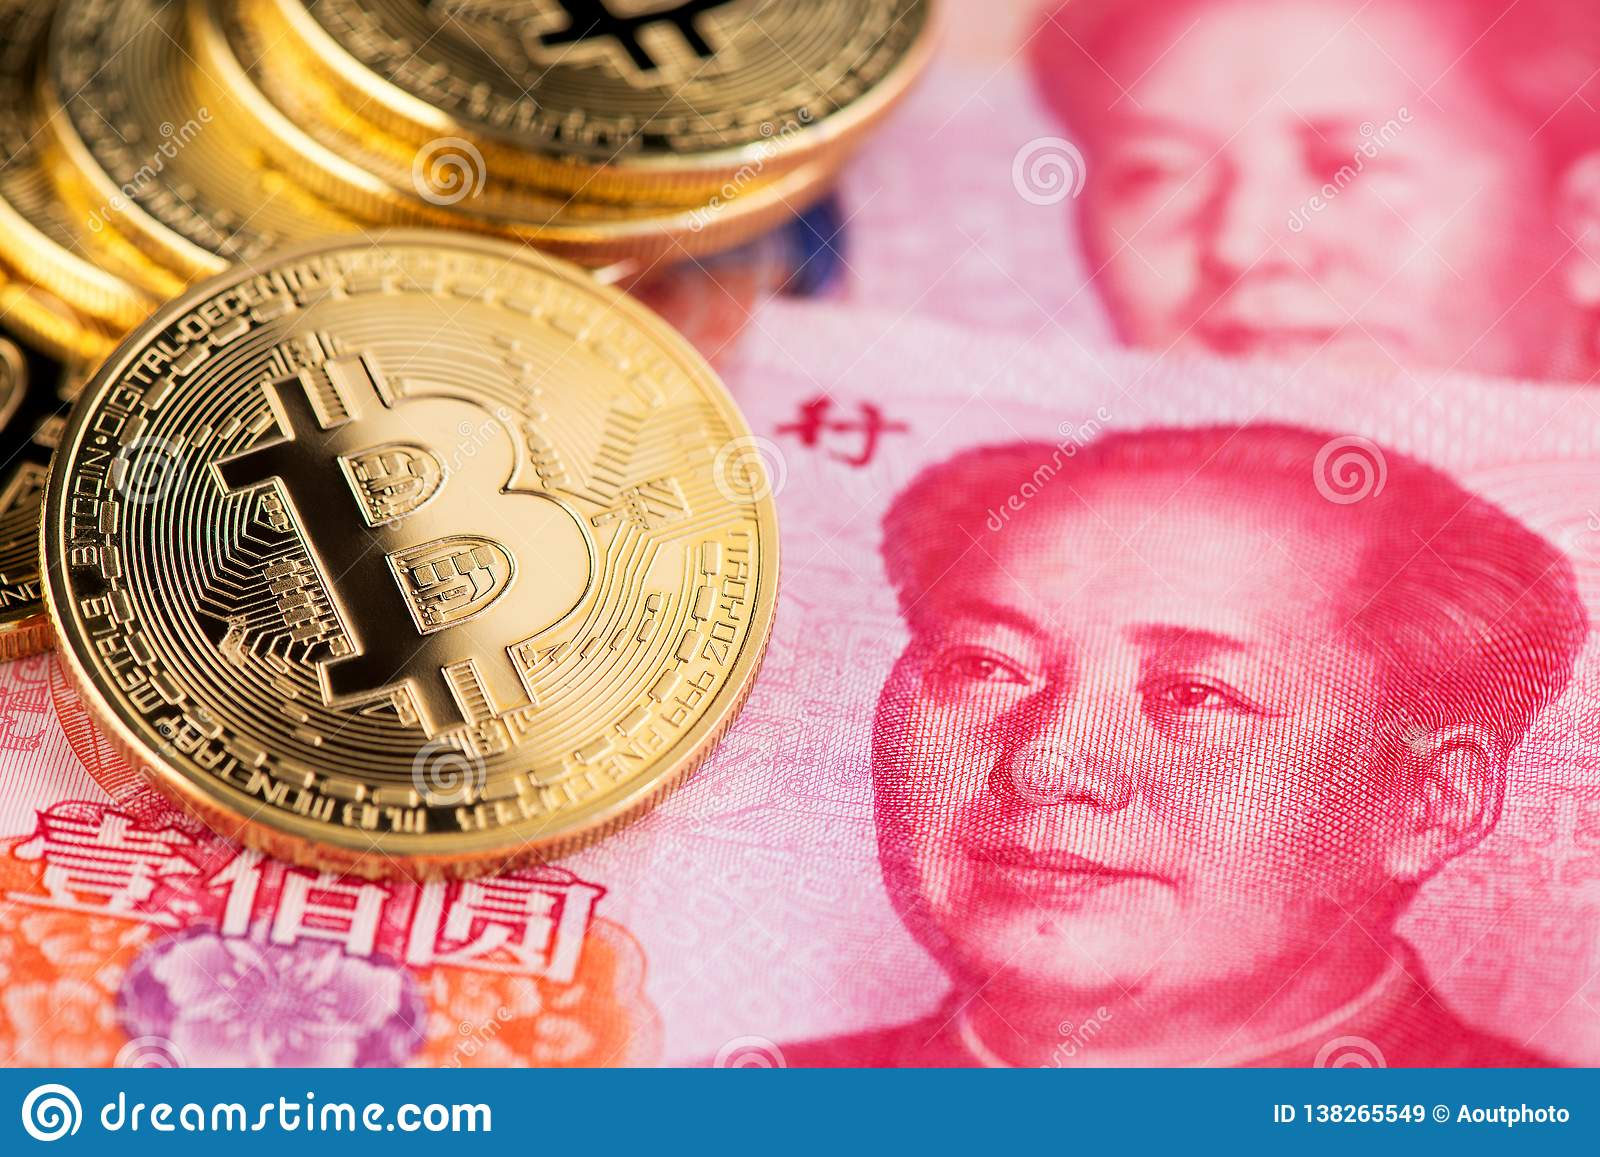 yuan coin cryptocurrency